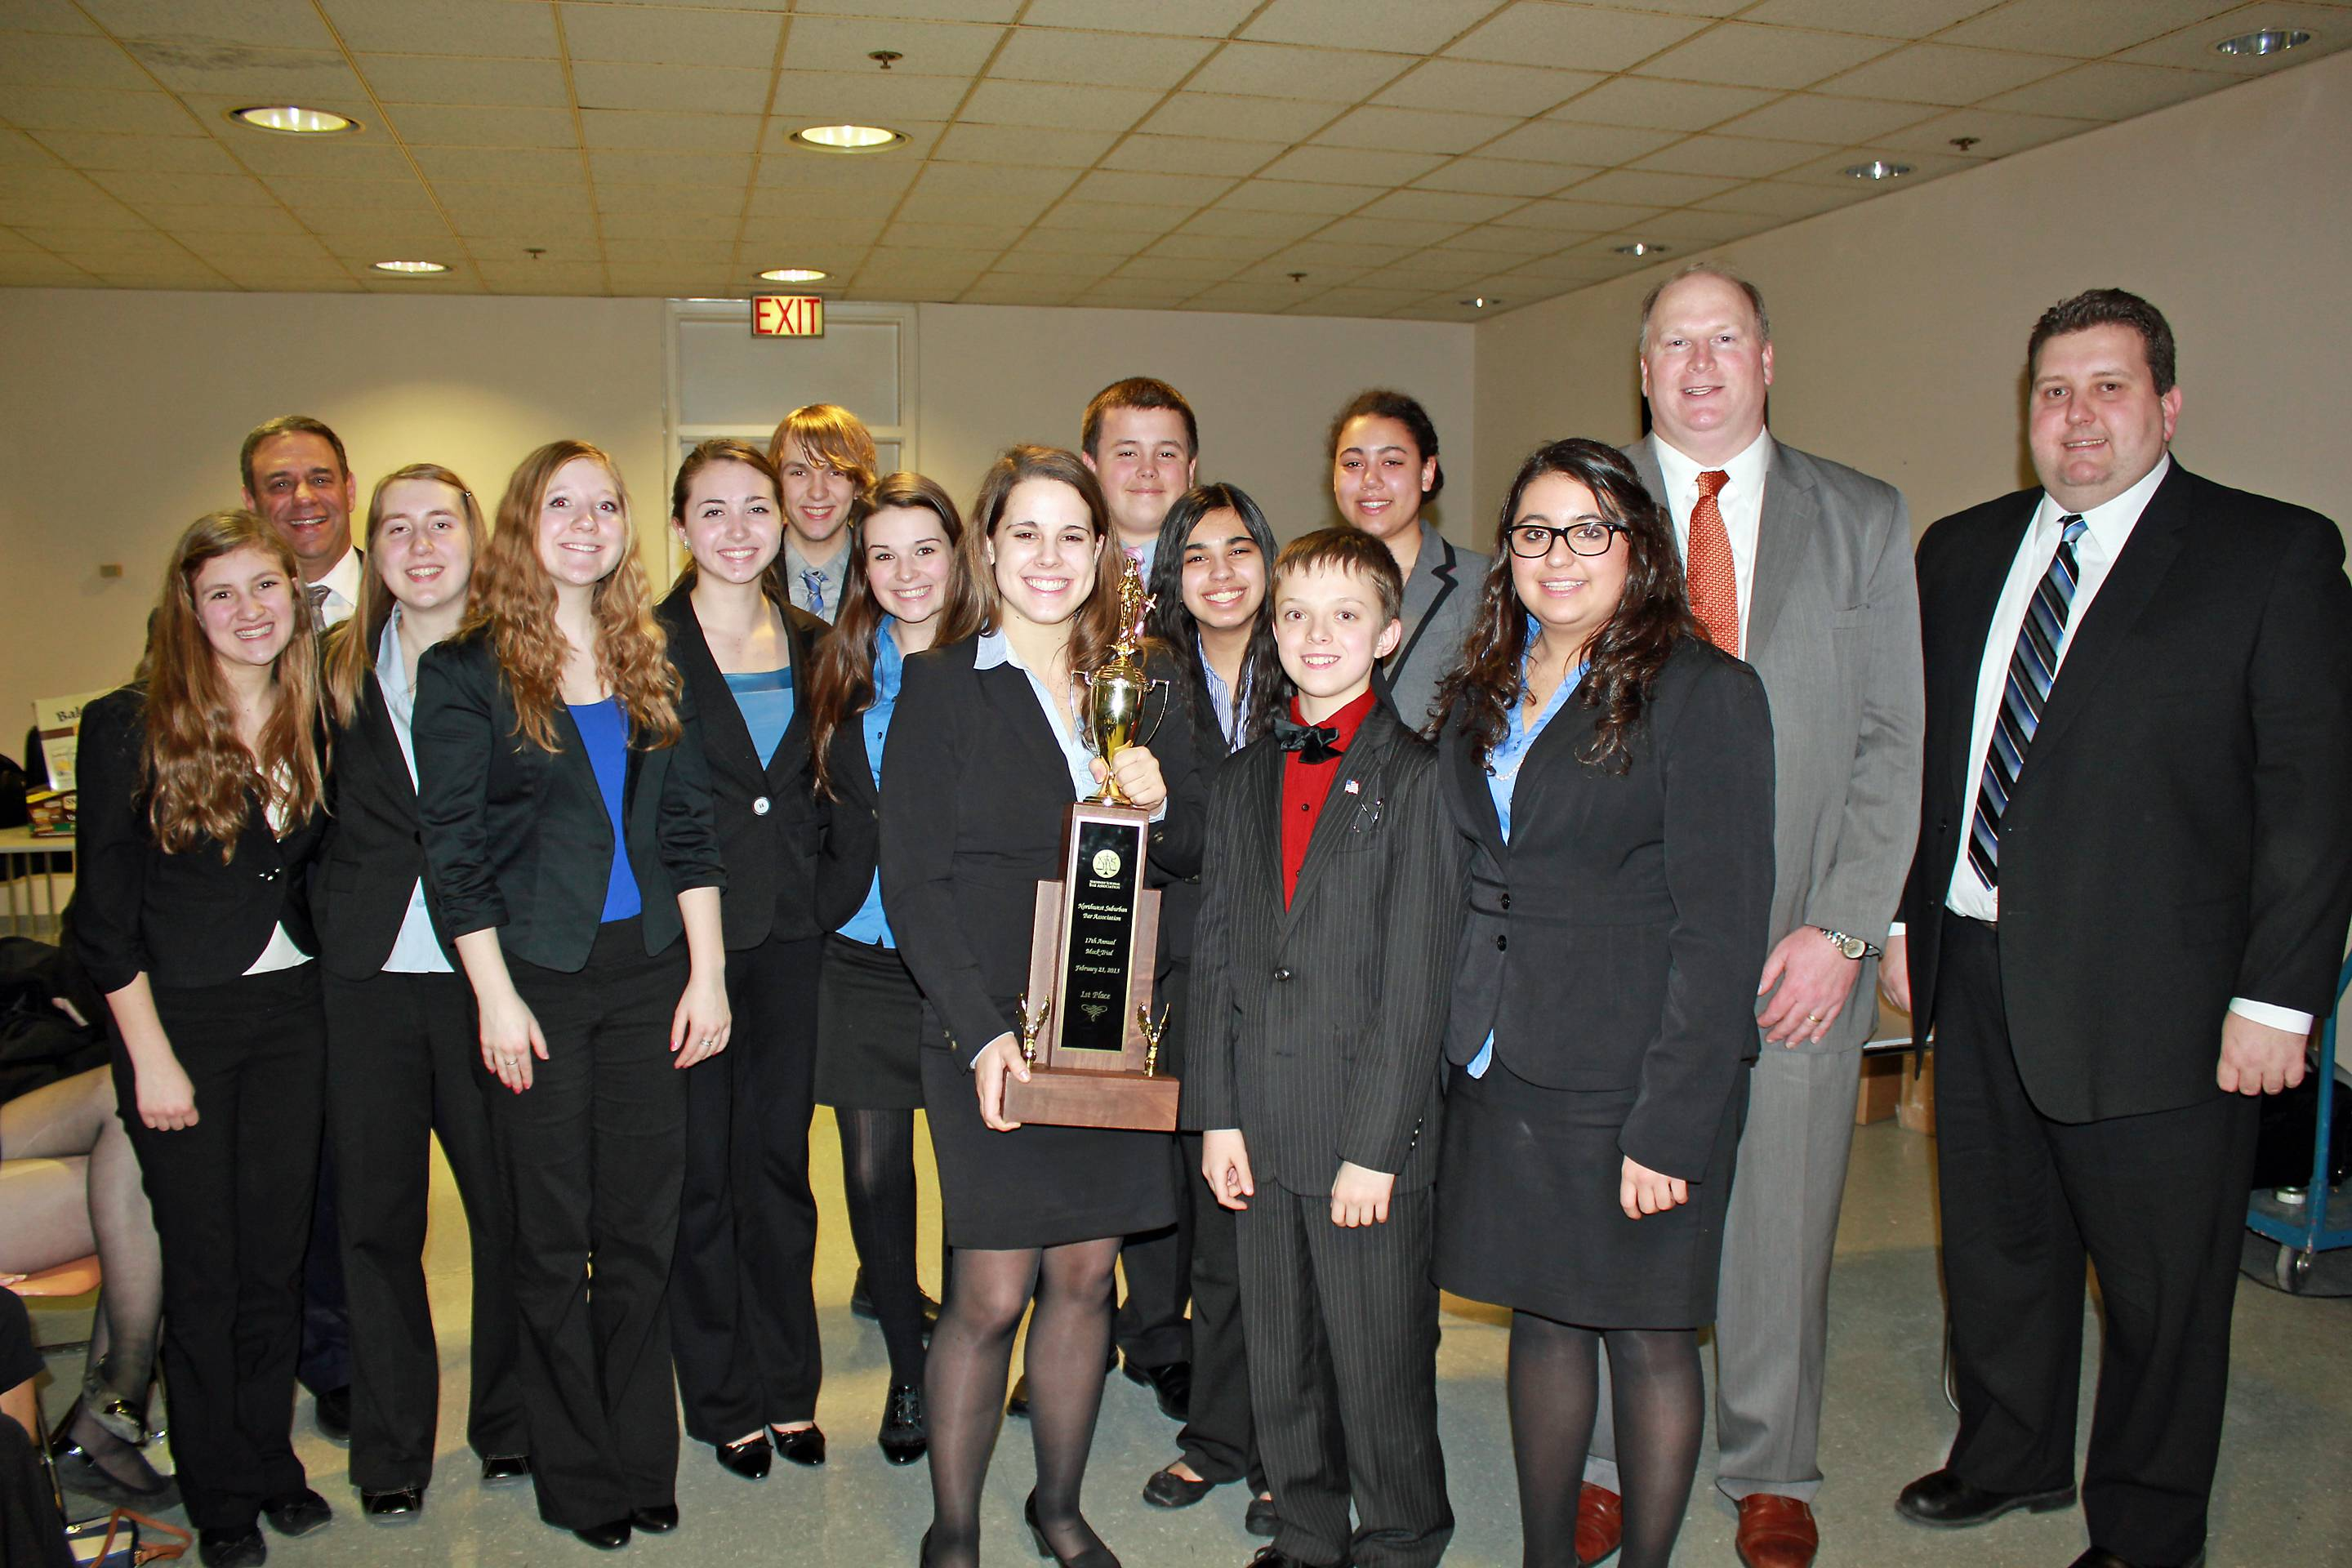 Members of the St. Charles North High School Mock Trial team receive the first-place trophy after winning the Nort